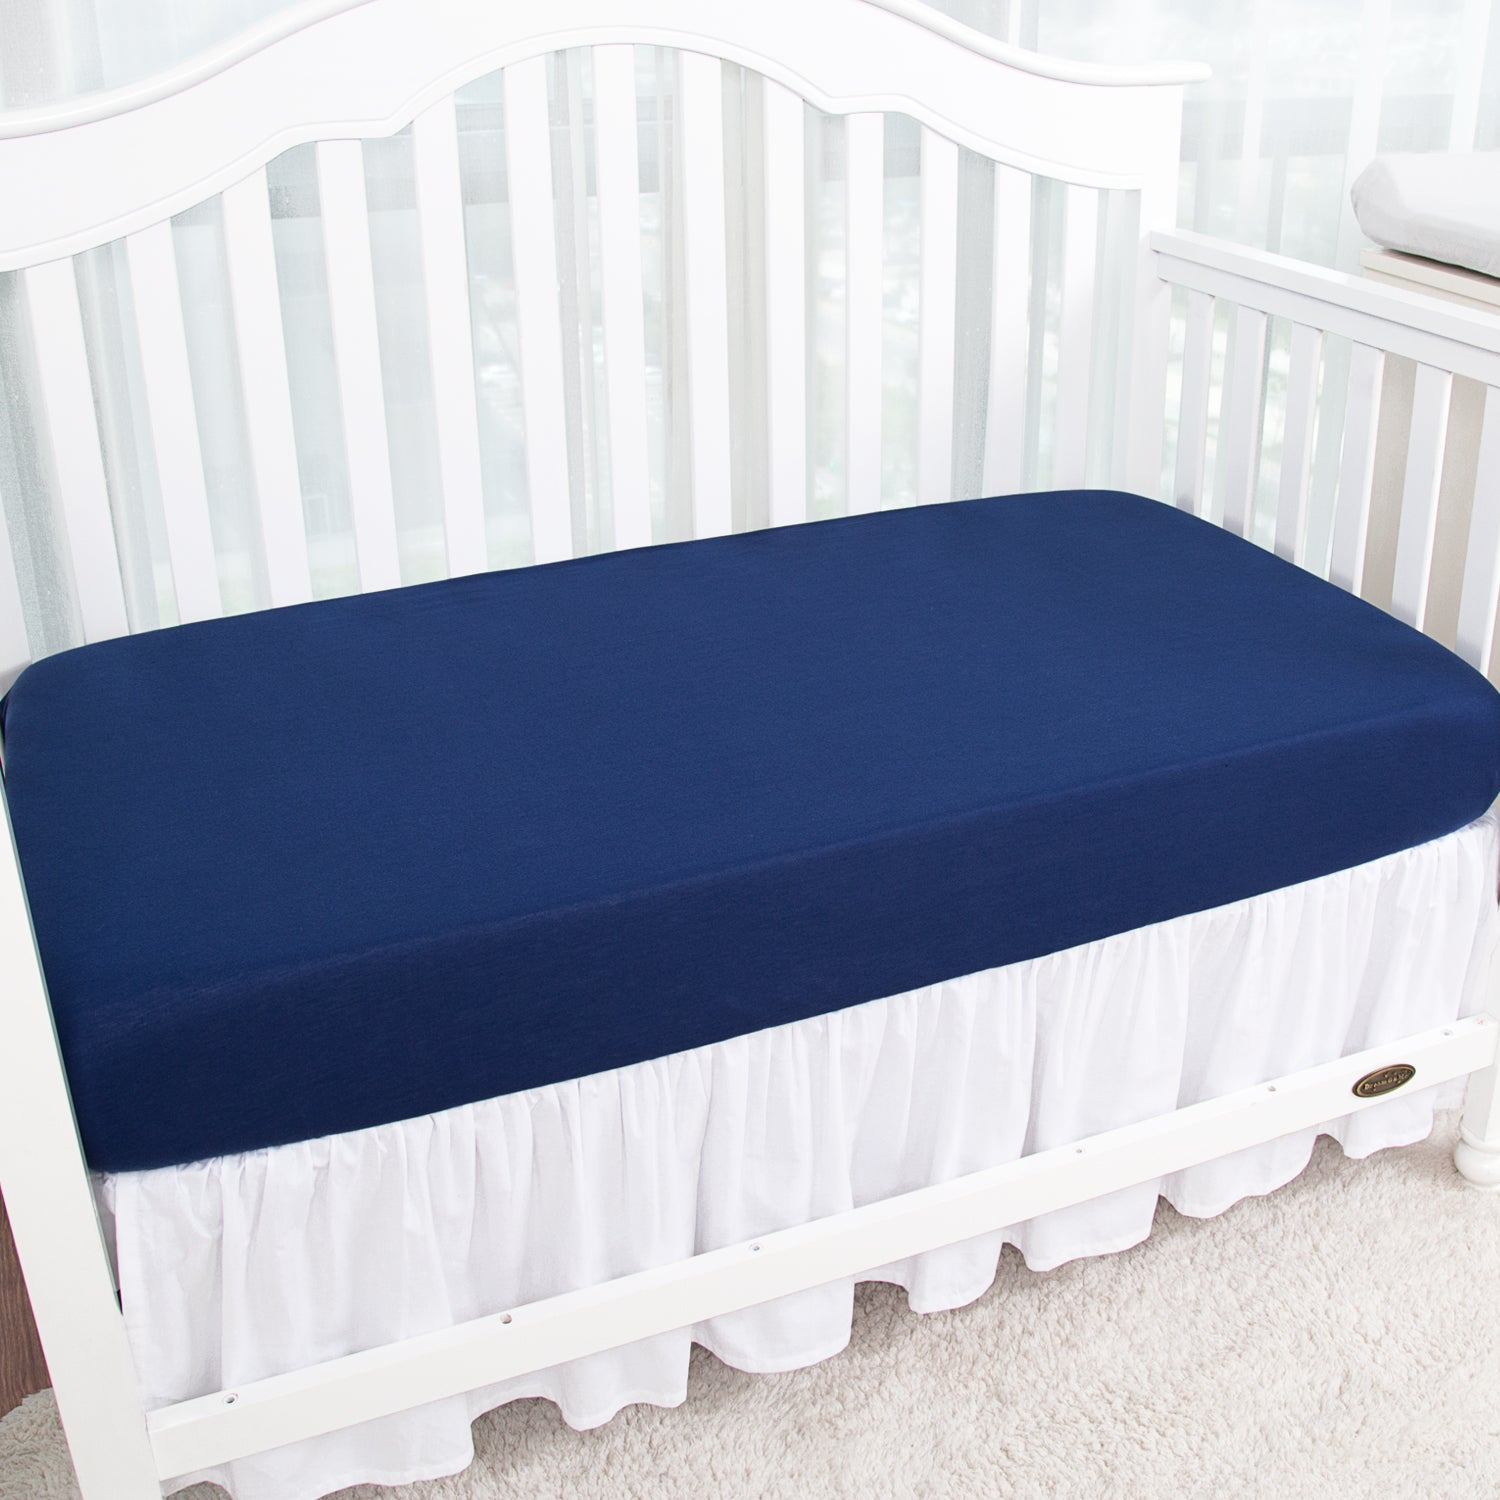 Jersey Knit Crib Sheets 2 PK - Navy & Light Gray